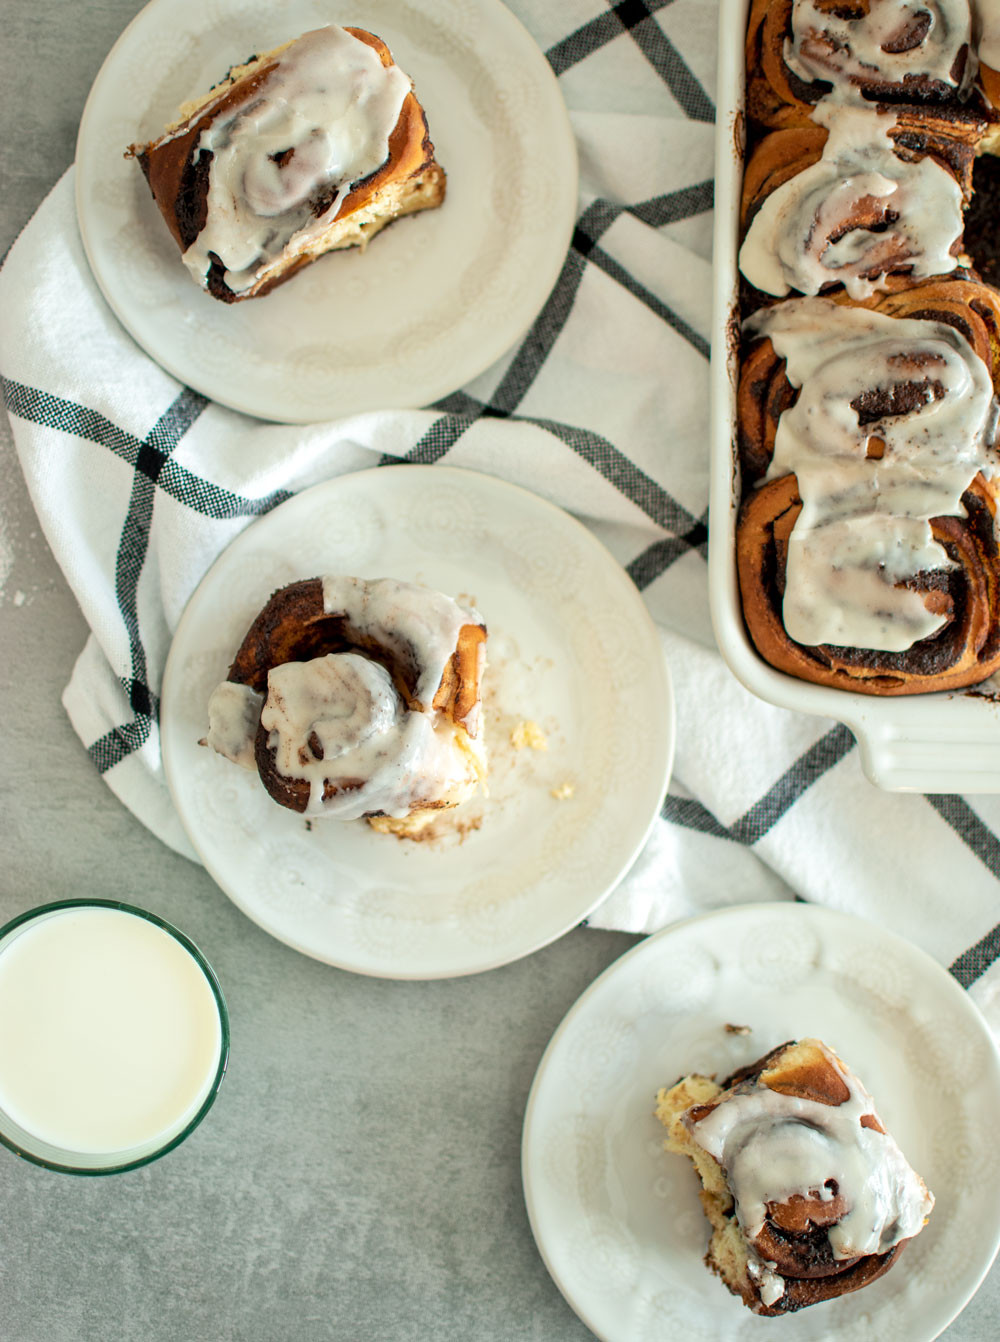 Chocolate Sweet Roll recipe that's perfect for brunch. This easy alternative cinnamon roll recipe is fun take on the classic cinnamon roll. Filled with chocolate instead of cinnamon and topped with a sweet glaze #cinnamonrolls #sweetrolls #chocolatepastries #breakfastpastries #brunch #brunchrecipe #highaltituderecipe #highaltitudebaking